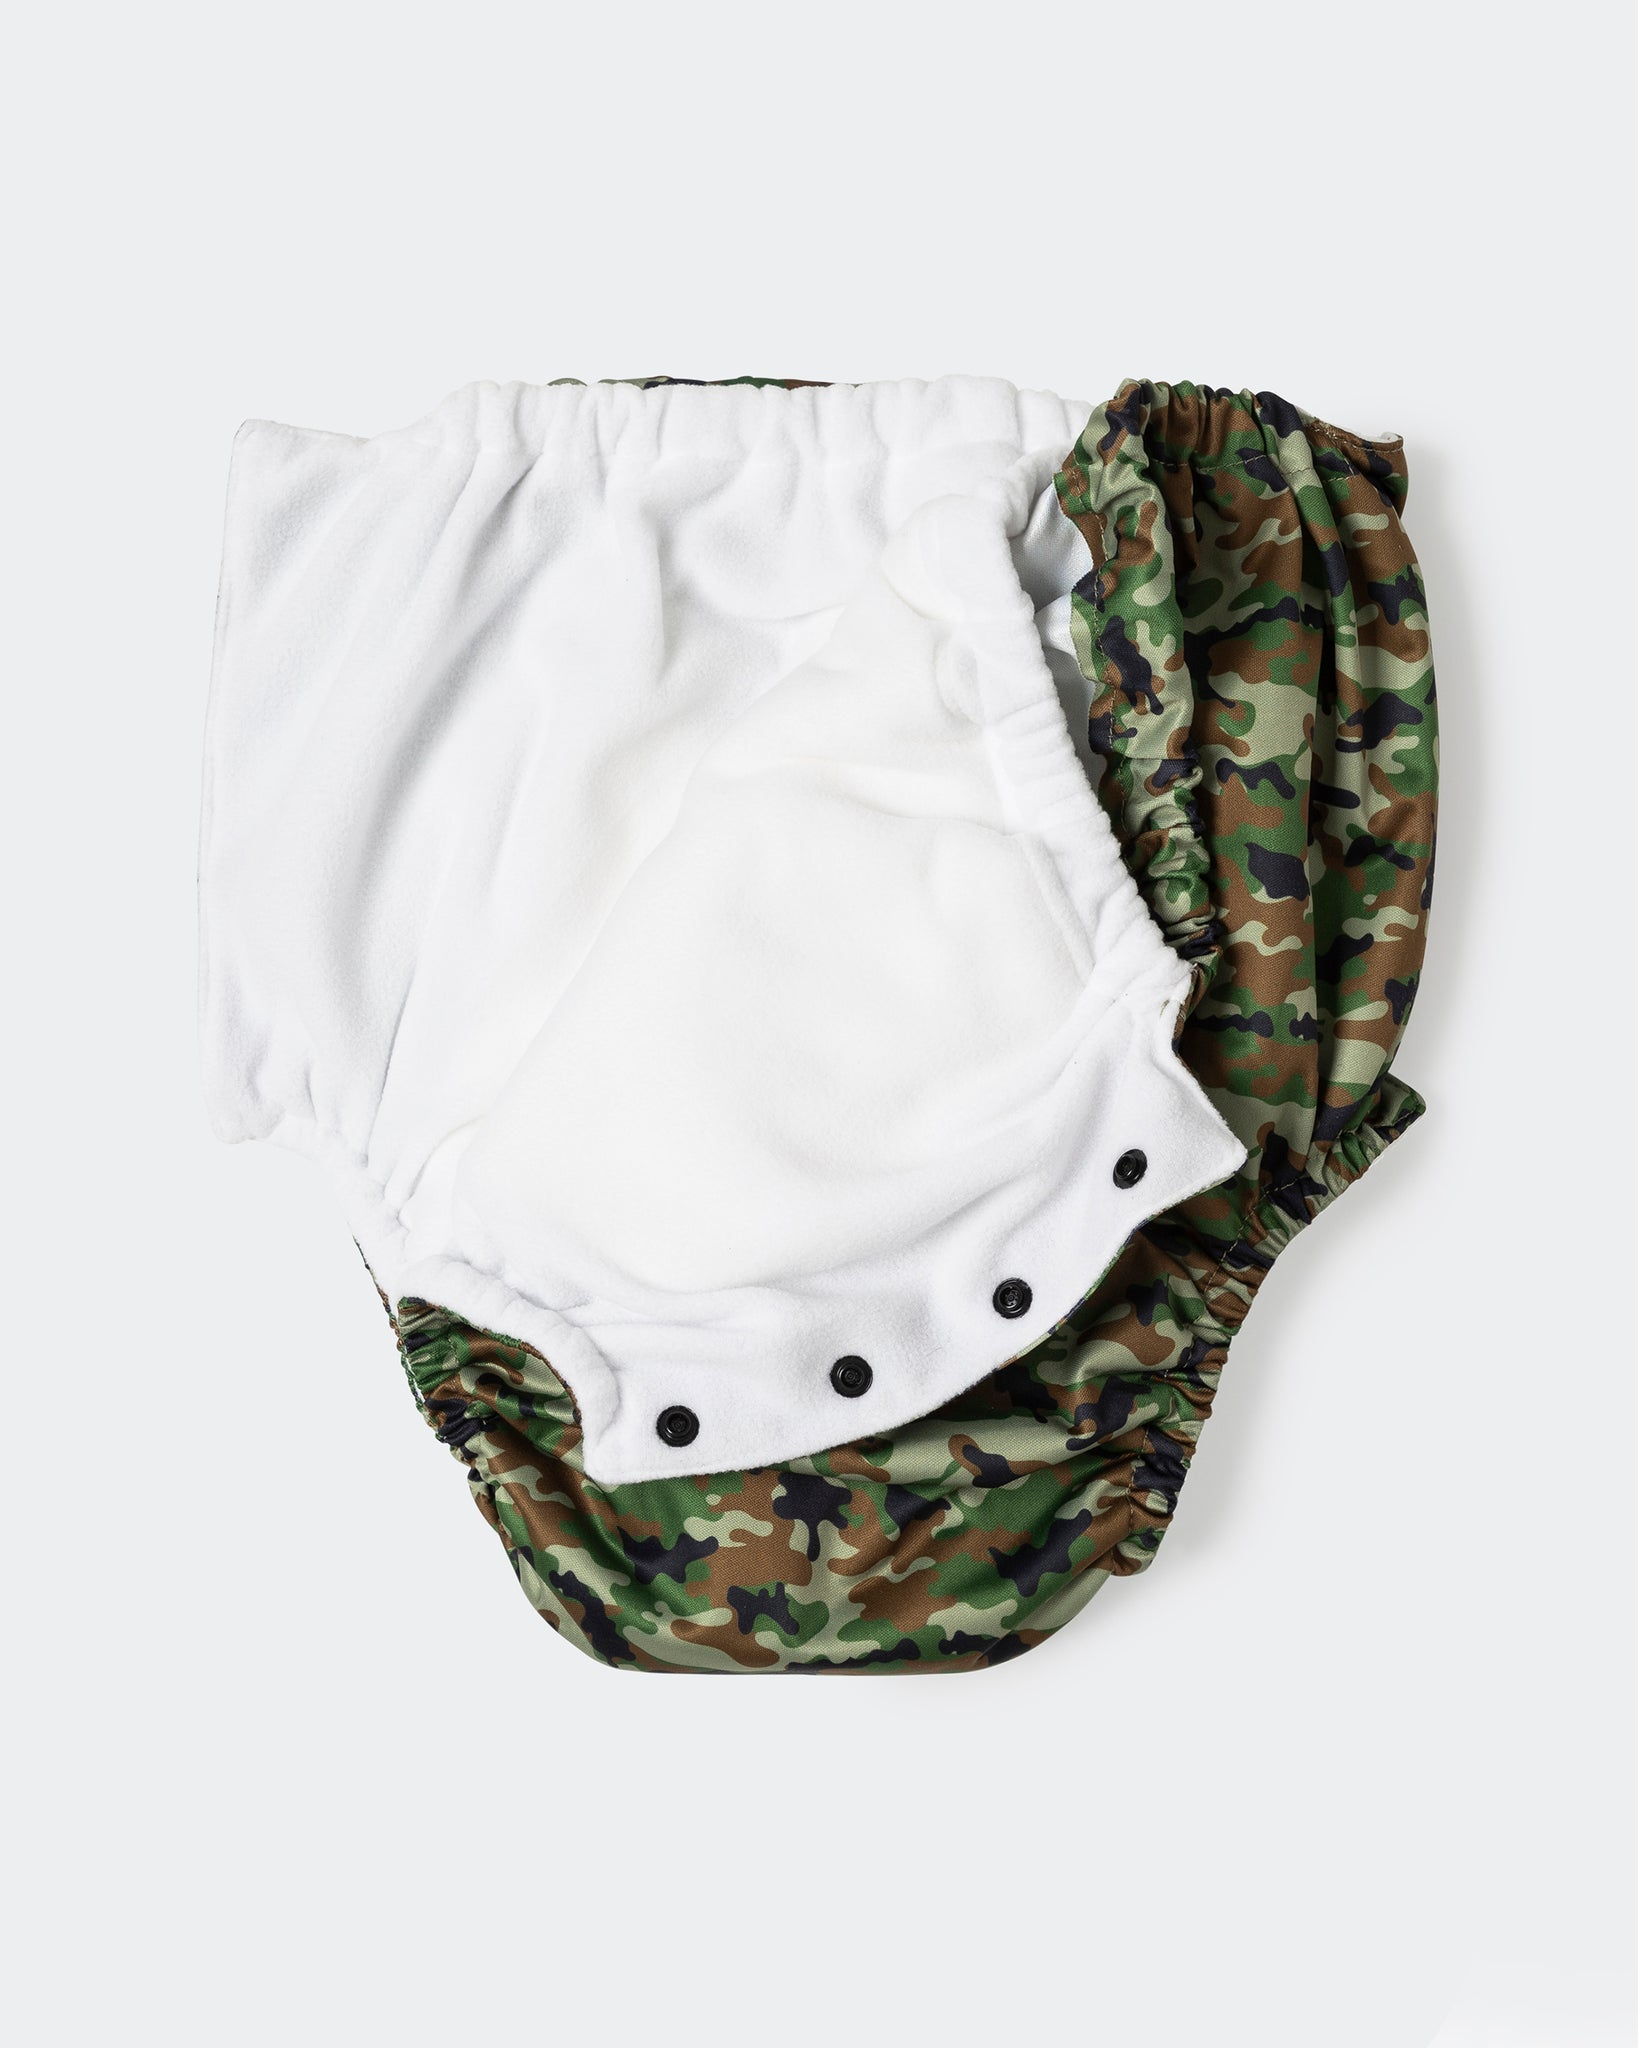 BUTTS - Camo Green